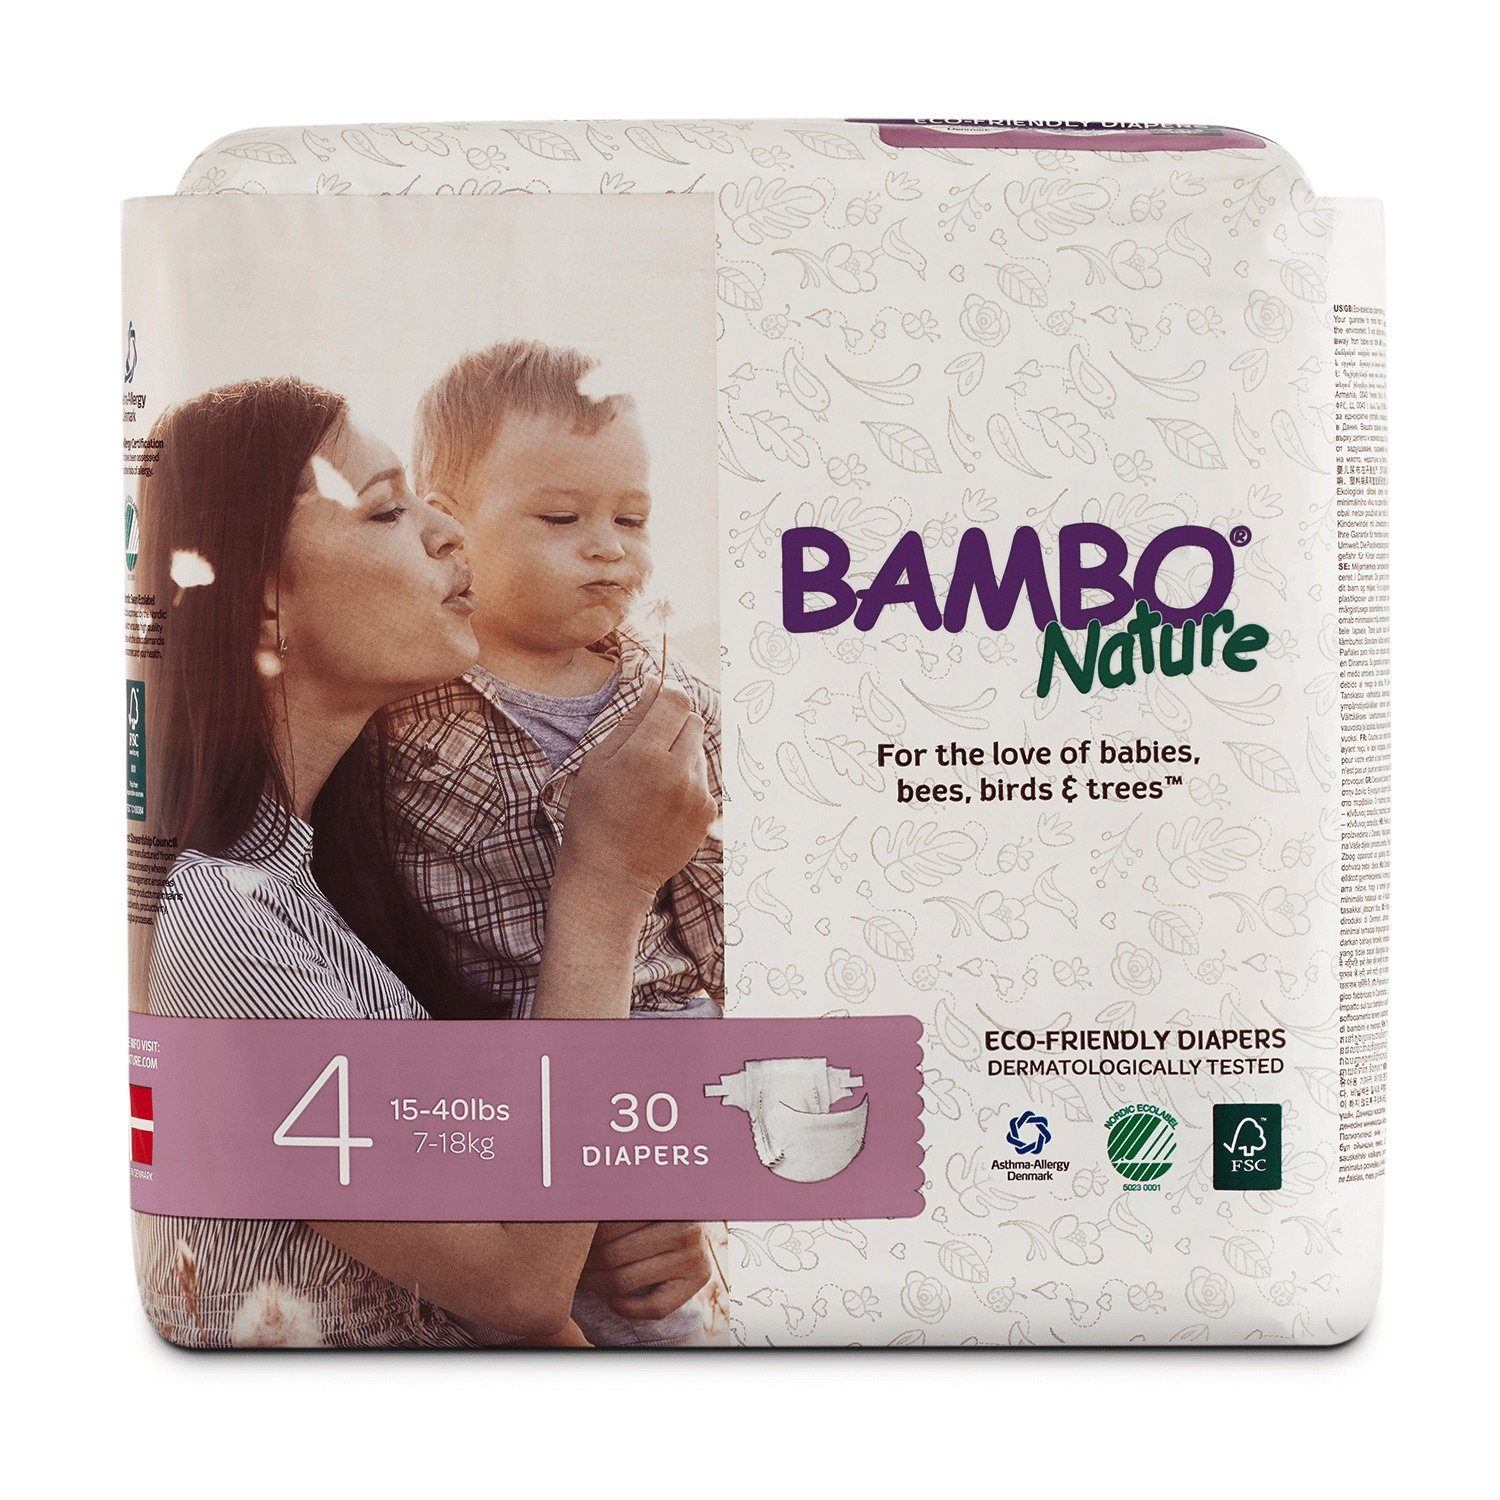 Bambo Nature Eco Friendly Premium Baby Diapers for Sensitive Skin, Size 4 (15-40 lbs), 30 Count by Bambo Nature